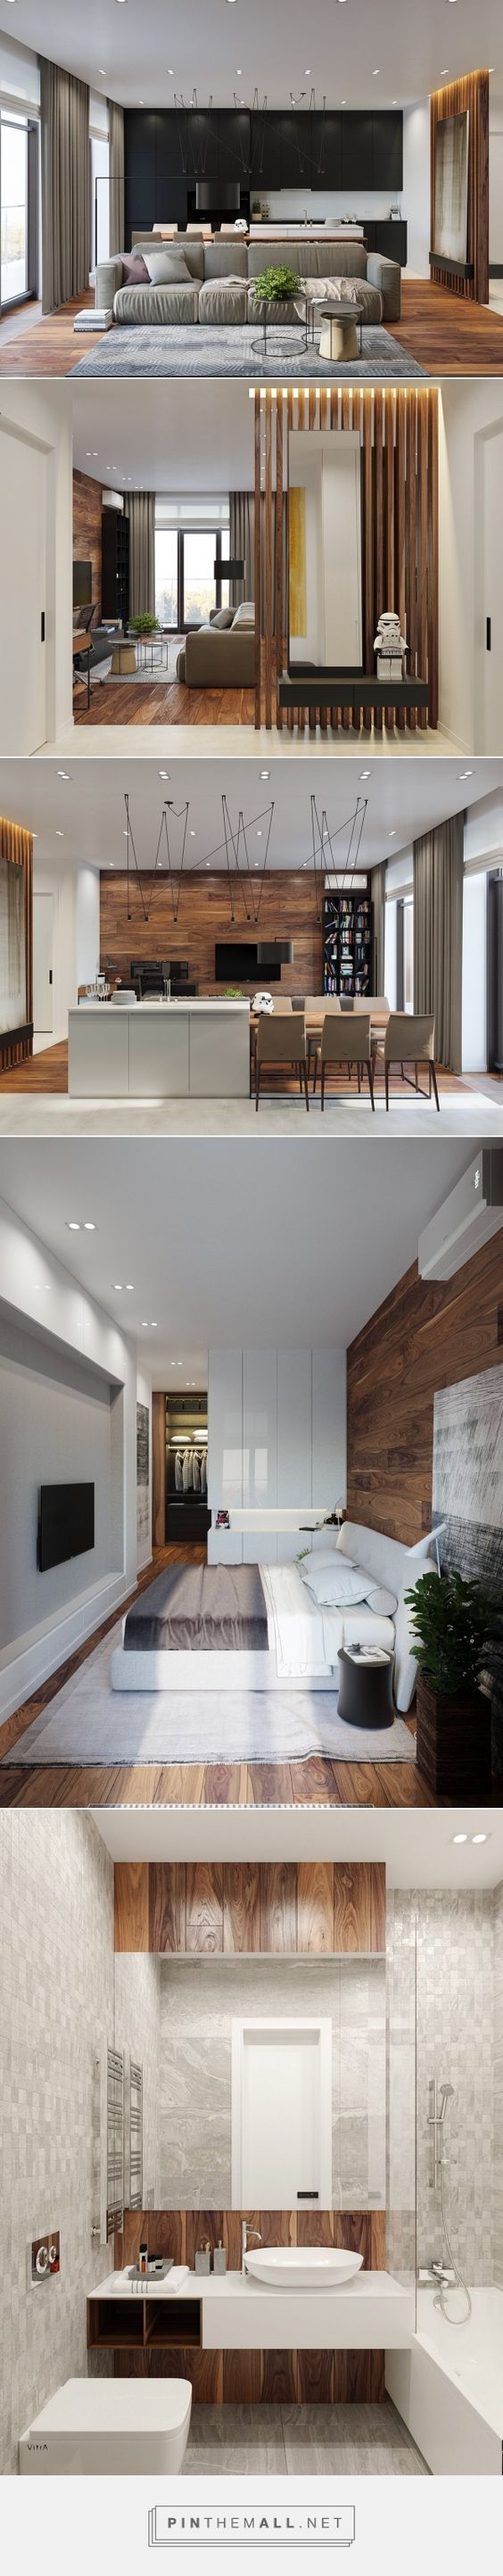 1080 best Interior Design images on Pinterest | Apartments ...